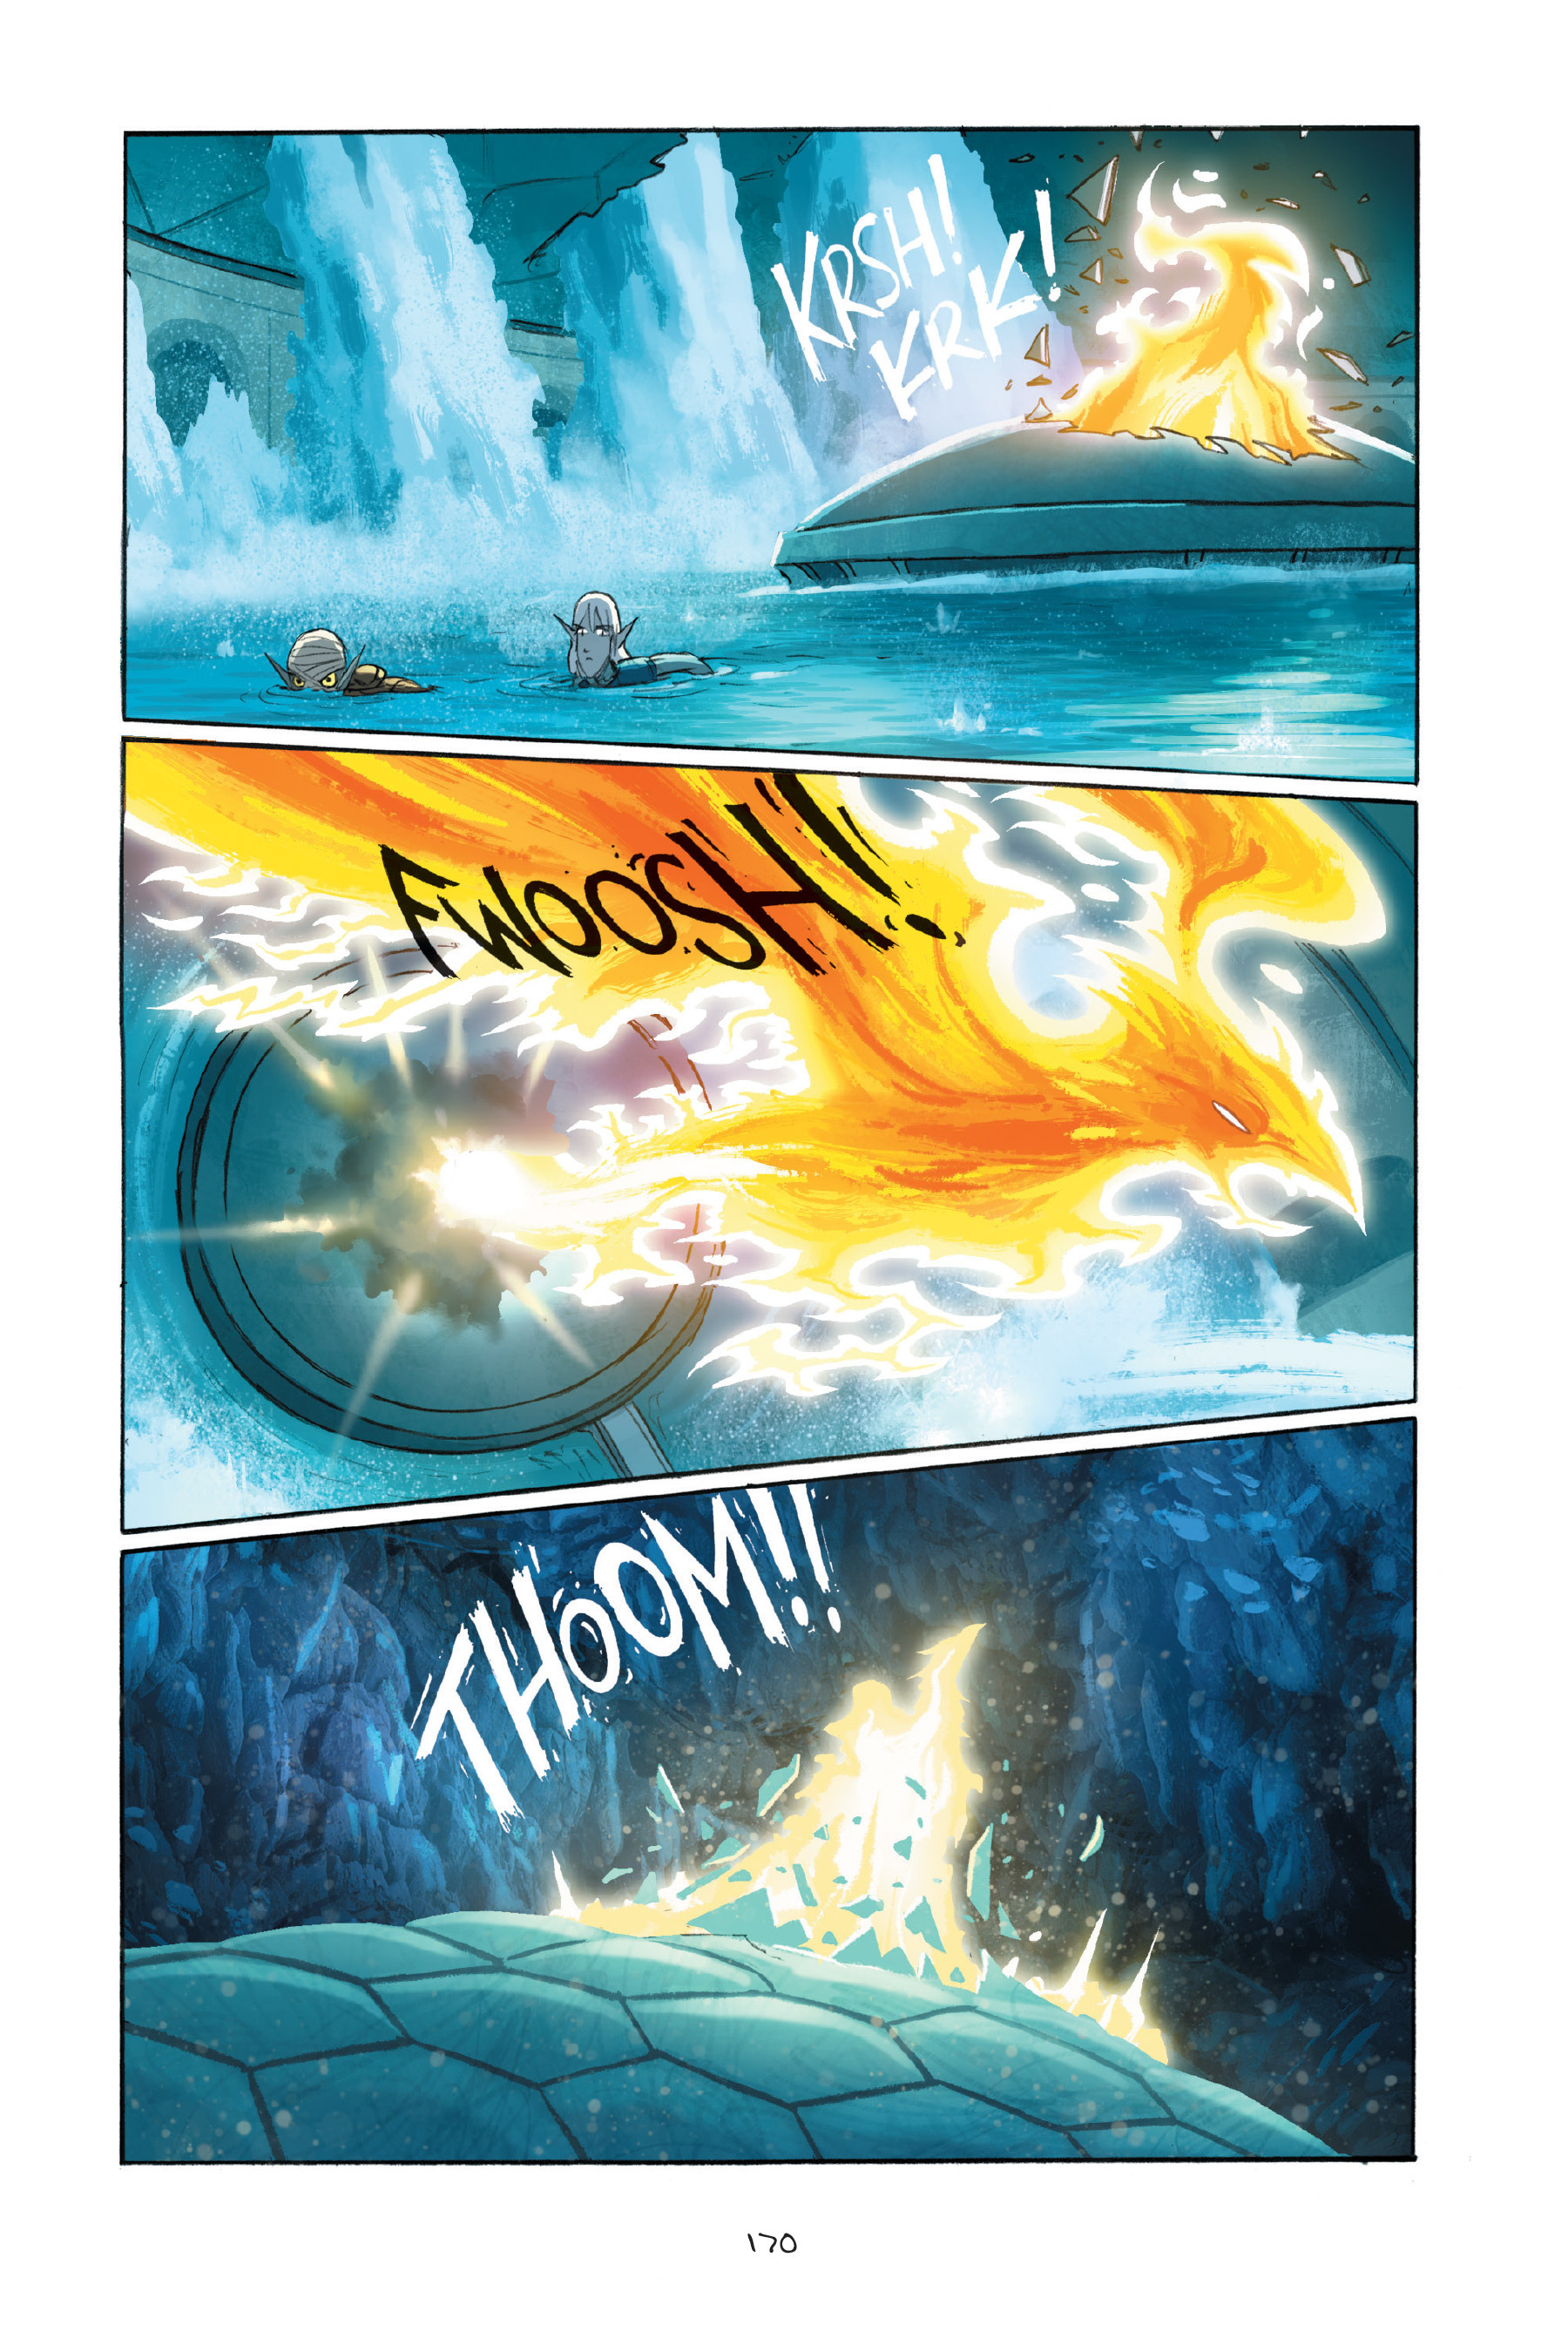 Read online Amulet comic -  Issue #7 - 170